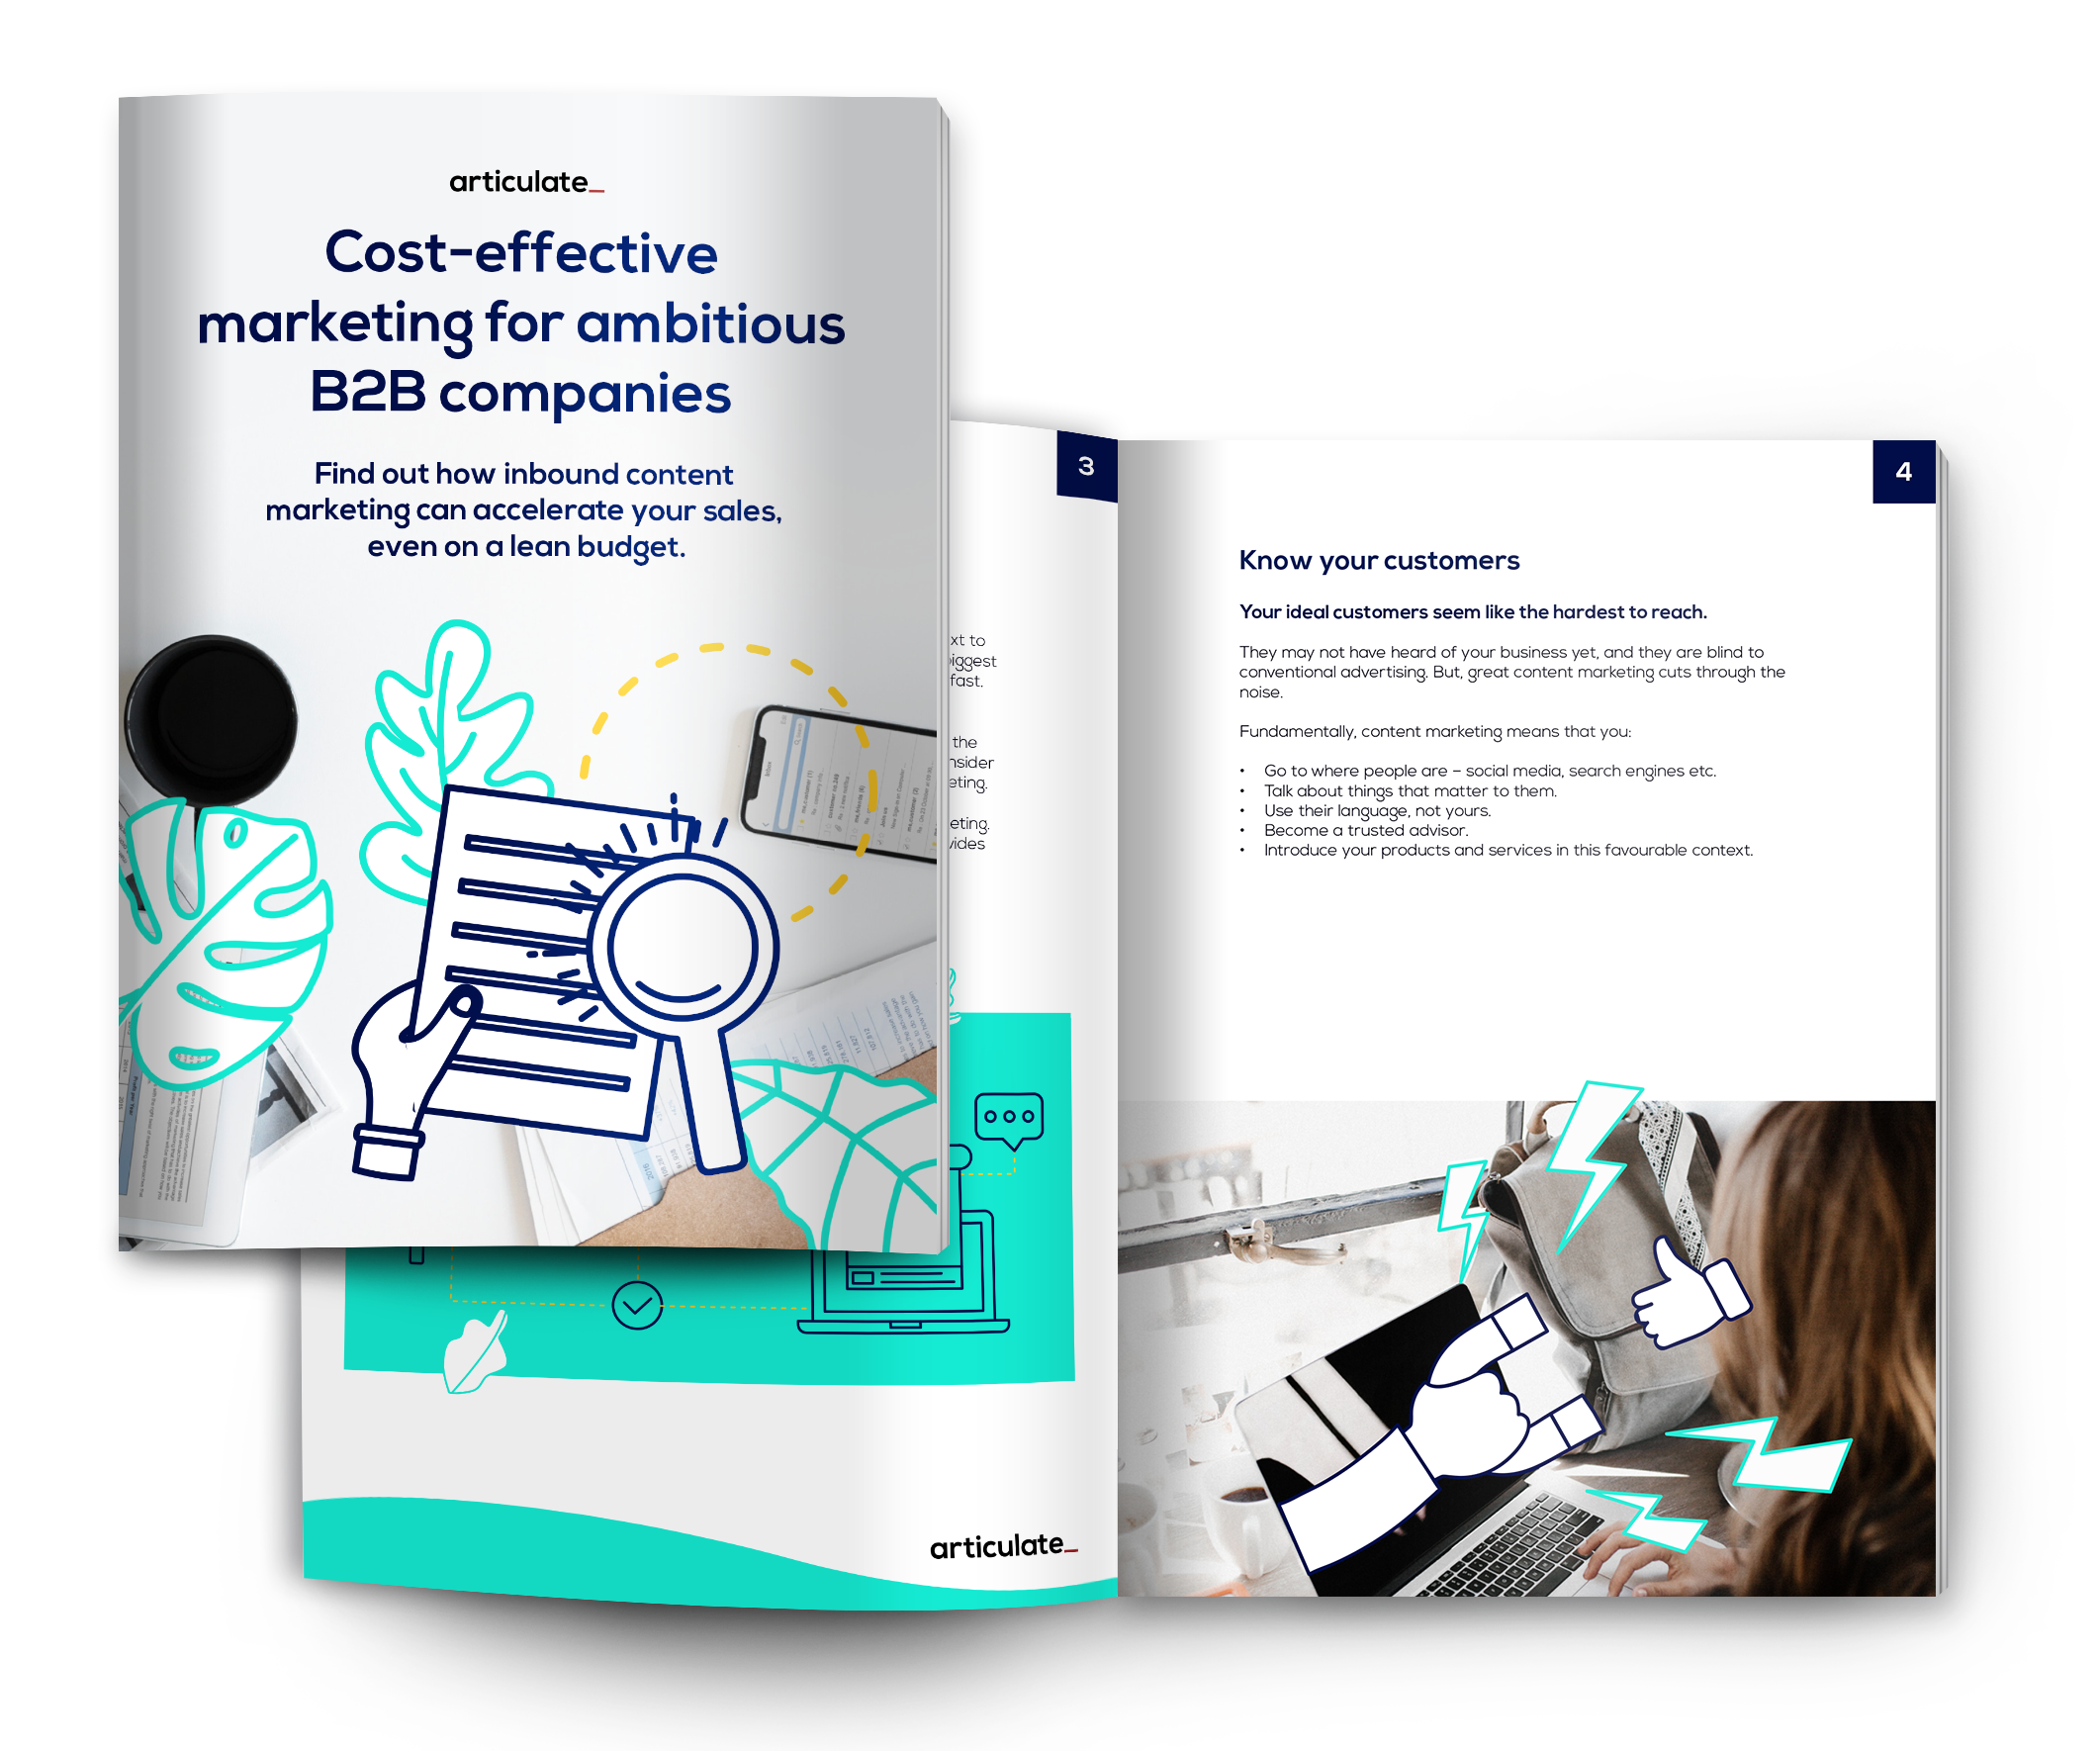 Cost-effective marketing for ambitious B2B companies